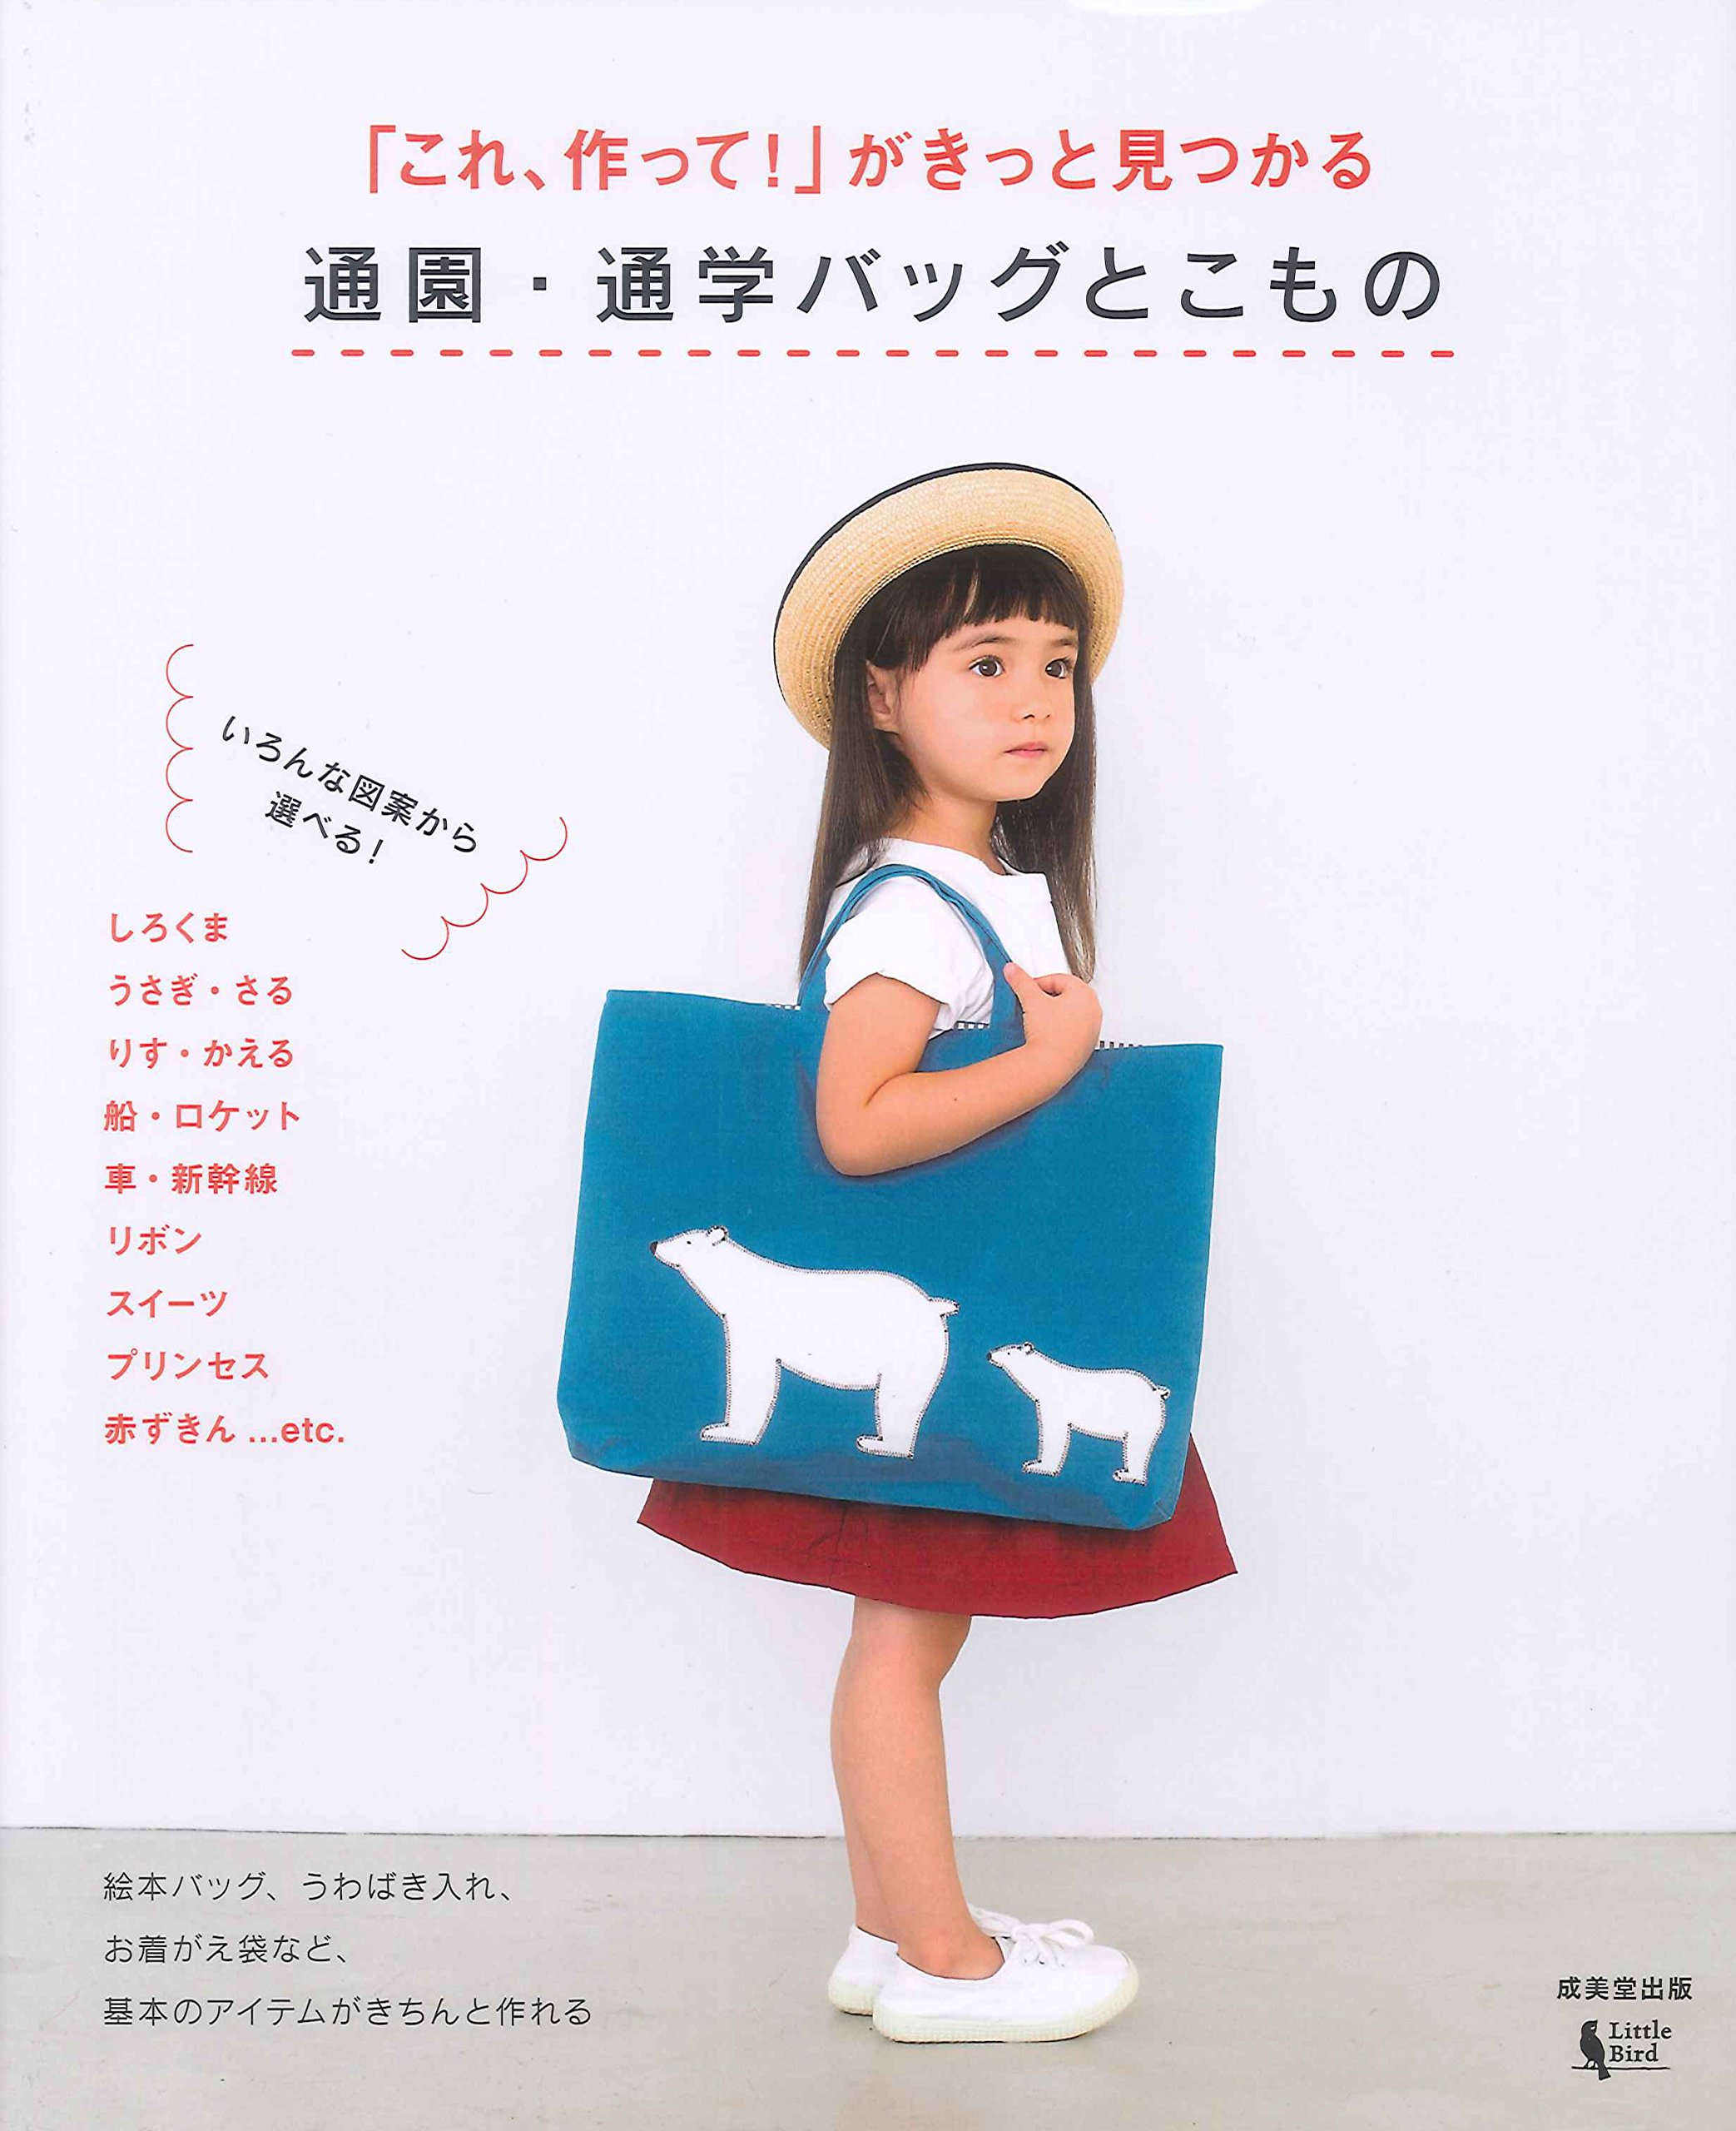 School bags and accessories by Little Bird